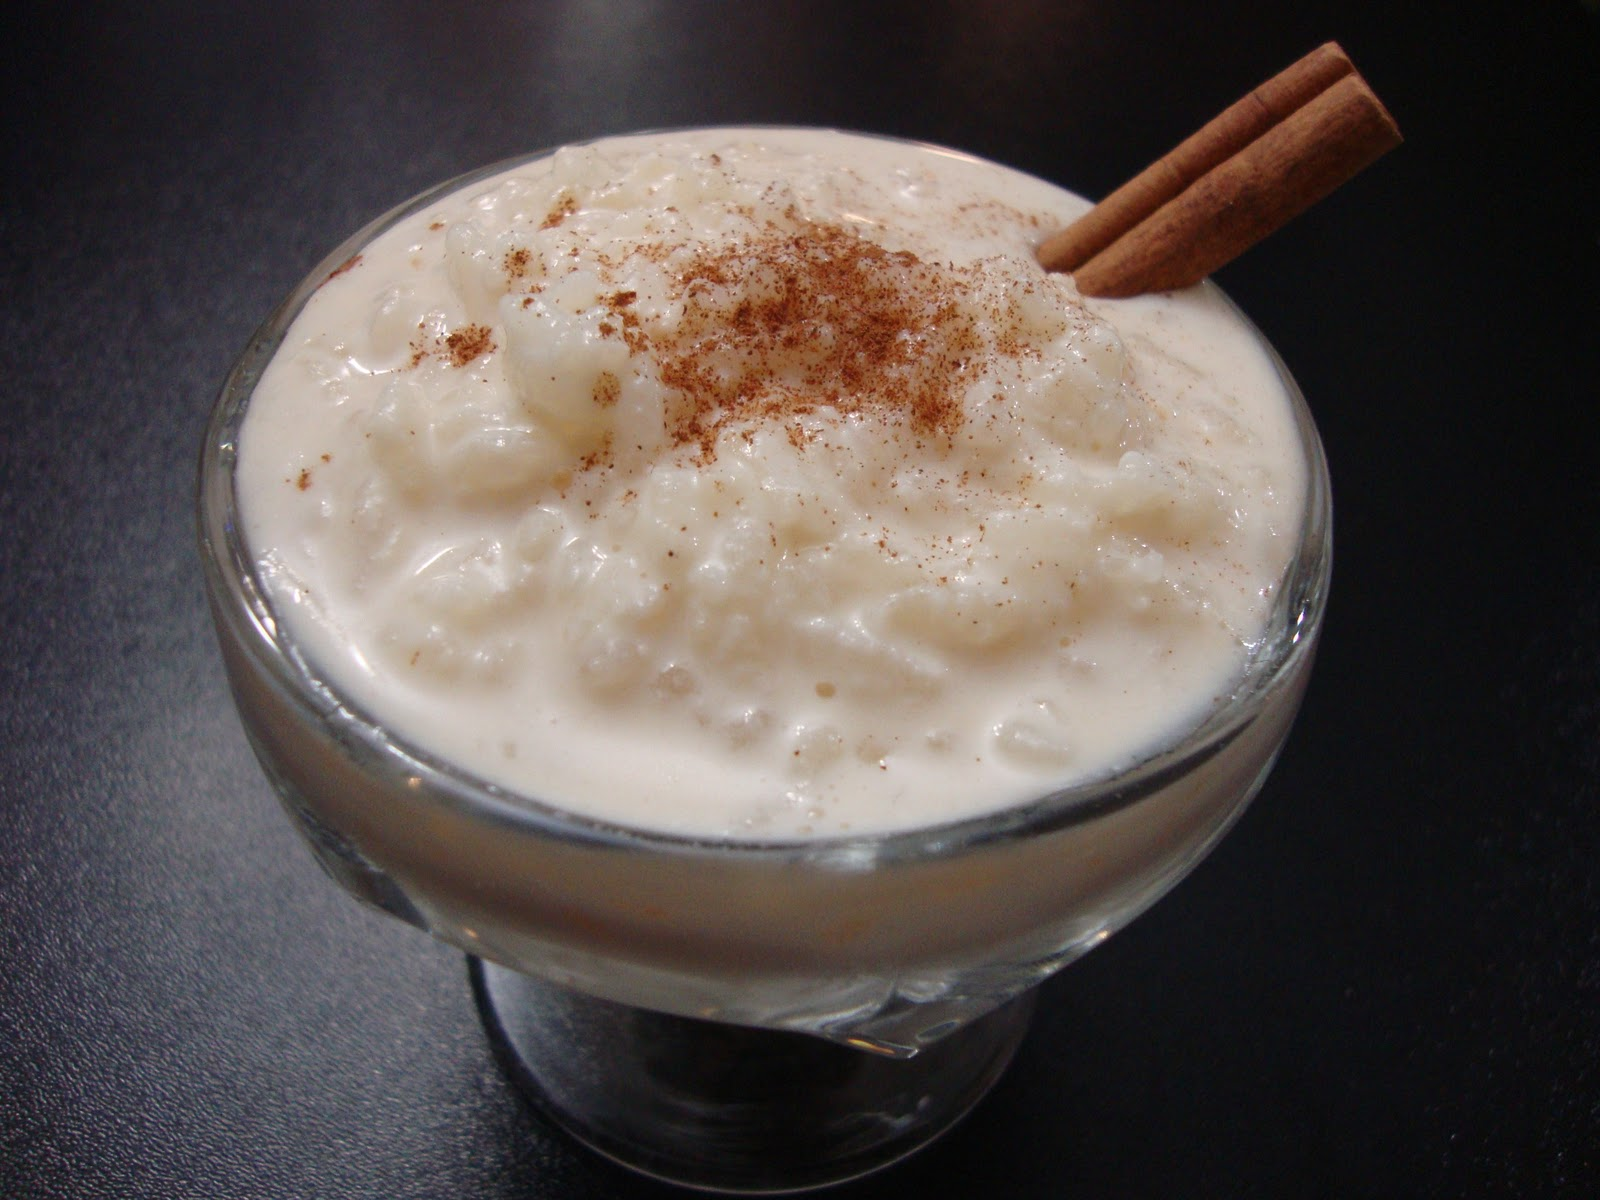 ... of Jackie Designs: Arroz con leche Colombiano (Colombian Rice Pudding